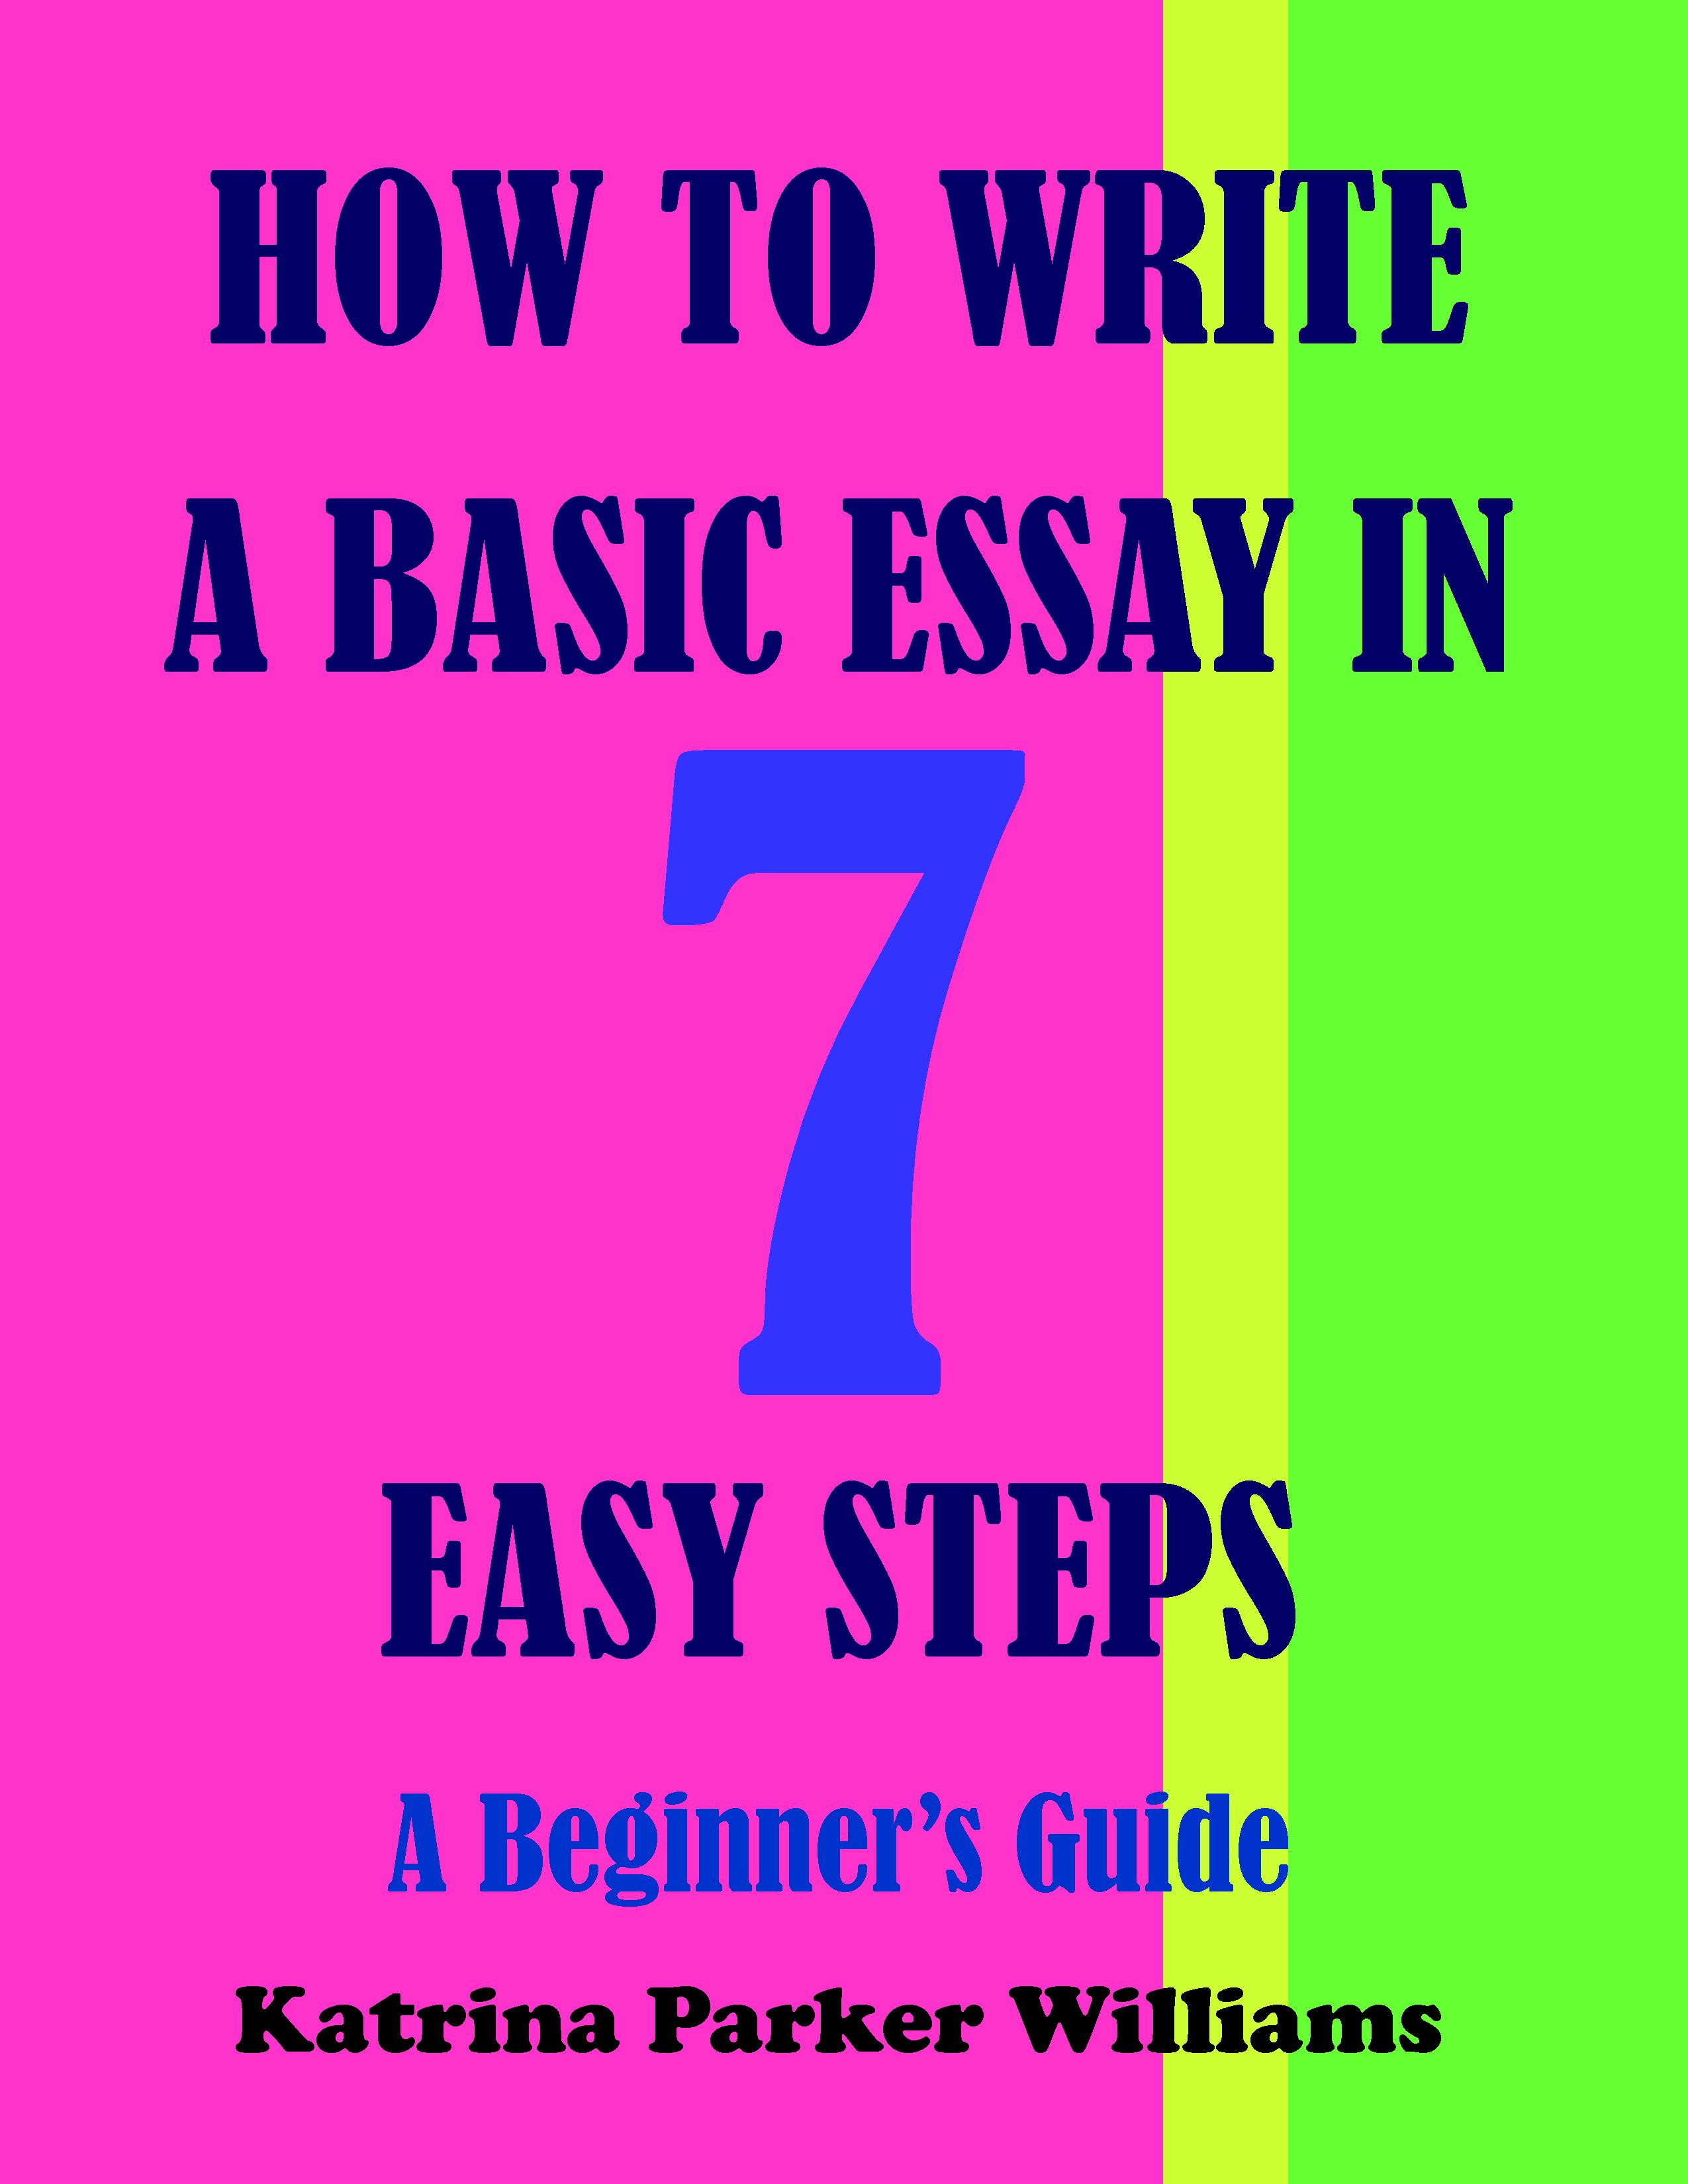 014 How To Write Basic Essay In Seven Easy Steps Writing An Stunning 4th Grade Middle School Conclusion Full